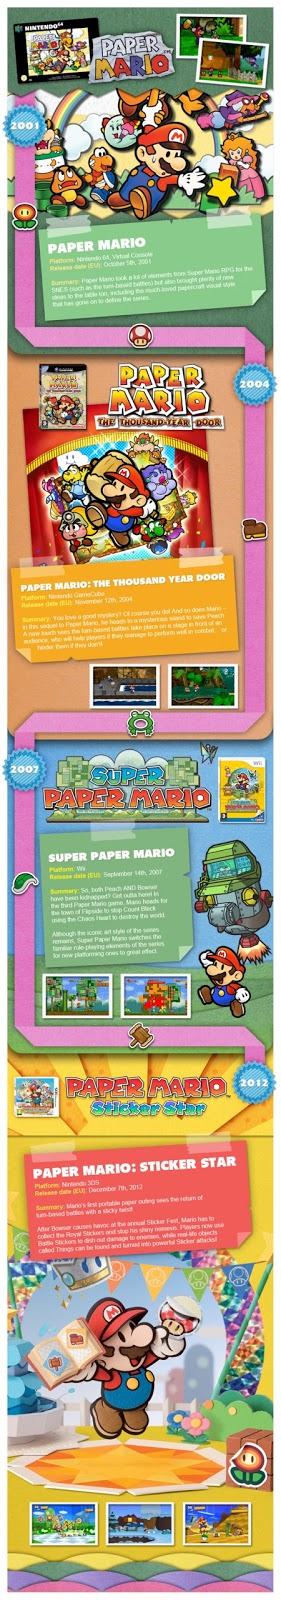 Paper Mario Sticker Star Infographic